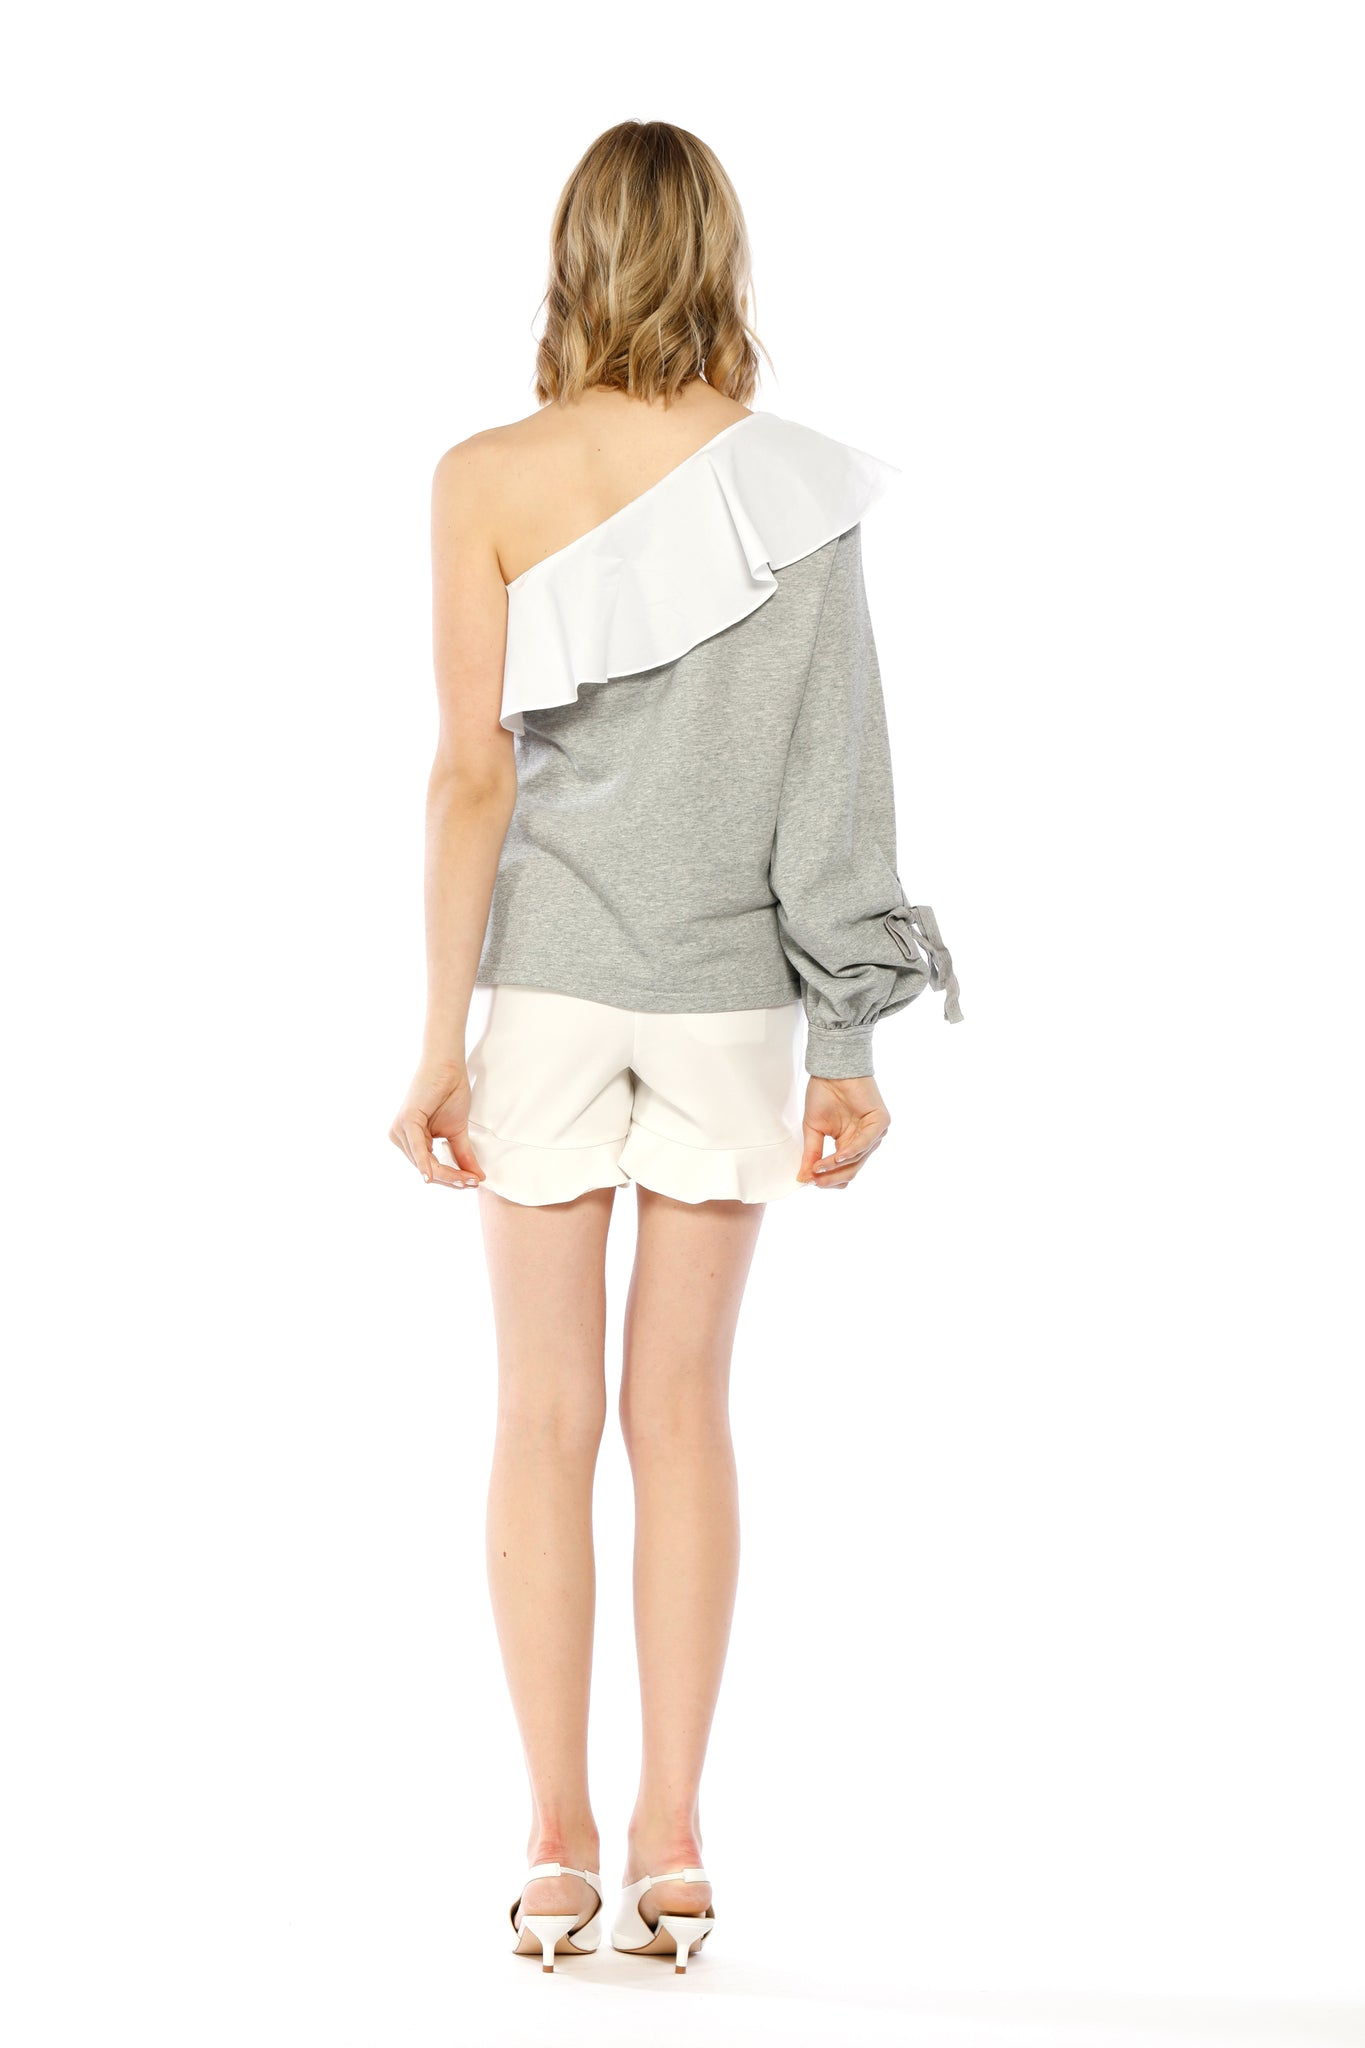 Back view of Marge Top, heather grey one-shouldered top with a large ruffled collar and a bishop sleeve adorned with a small tie. 87.6% Cotton and 12.4% Spandex - and Machine-washable.